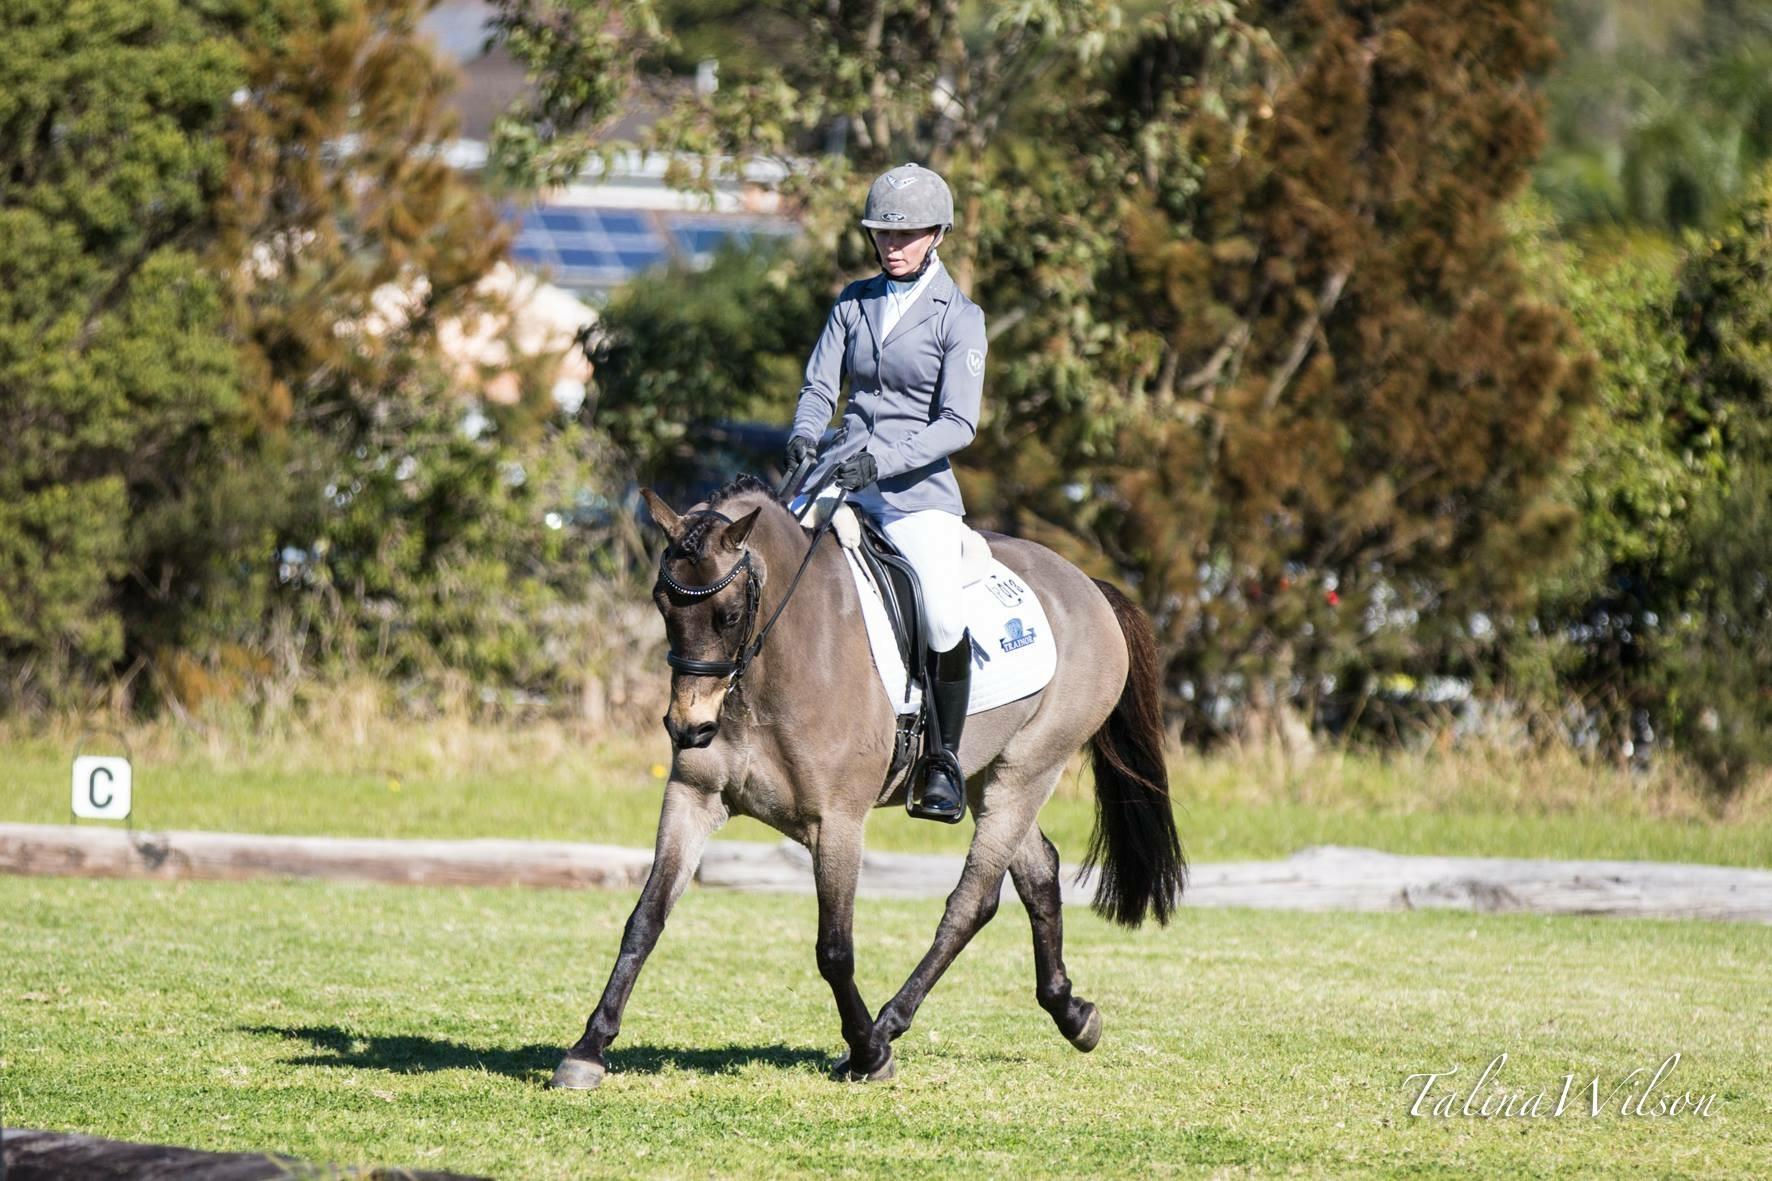 FEI Prospect Winning Dressage Pony